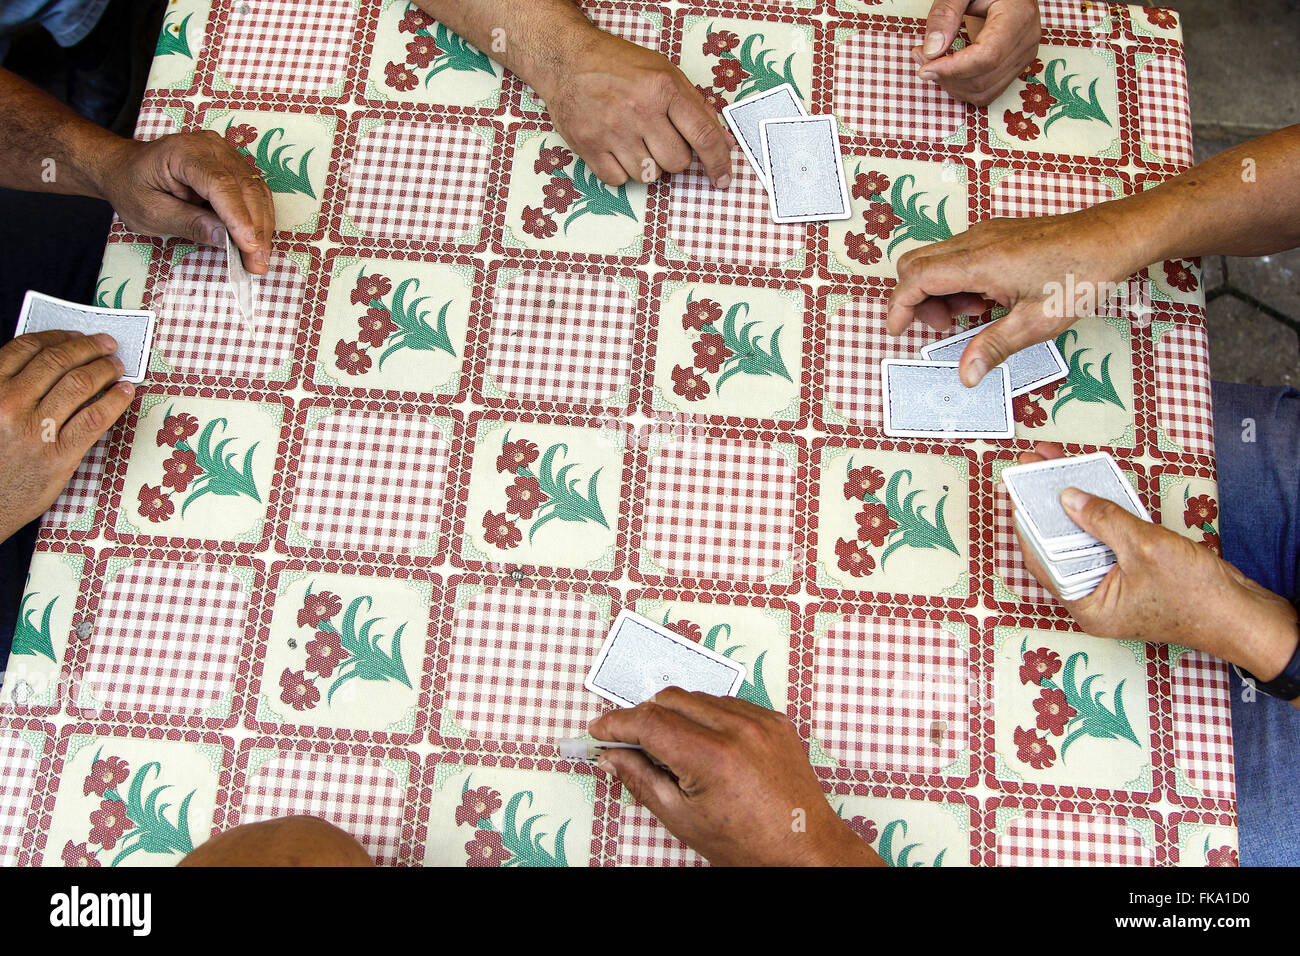 Playing cards on the table with plastic tablecloth florida - Stock Image